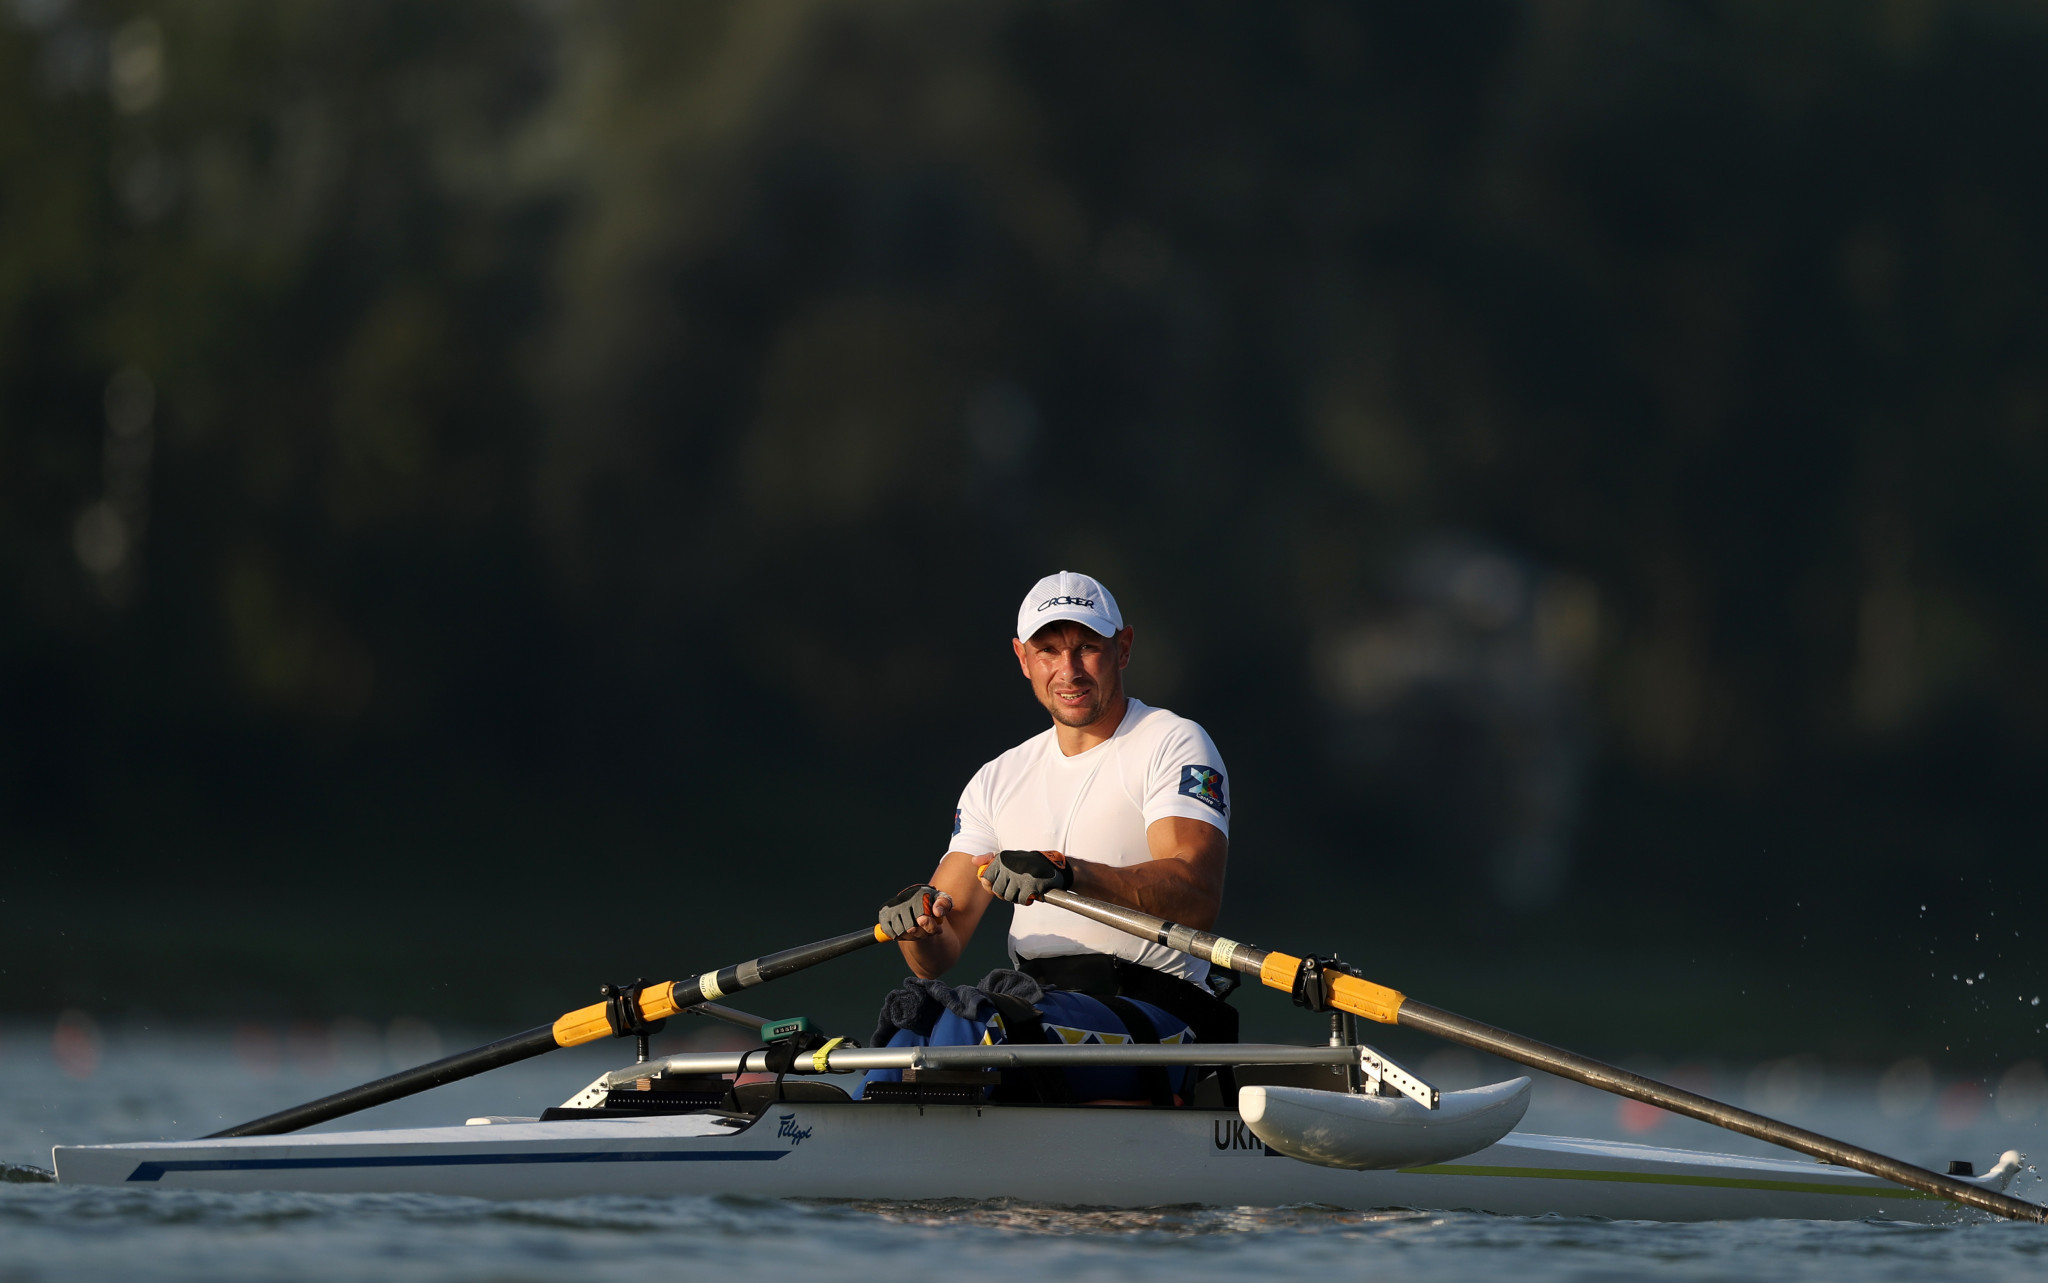 Para-rowing competition to make return at European Rowing Championships in Poznan